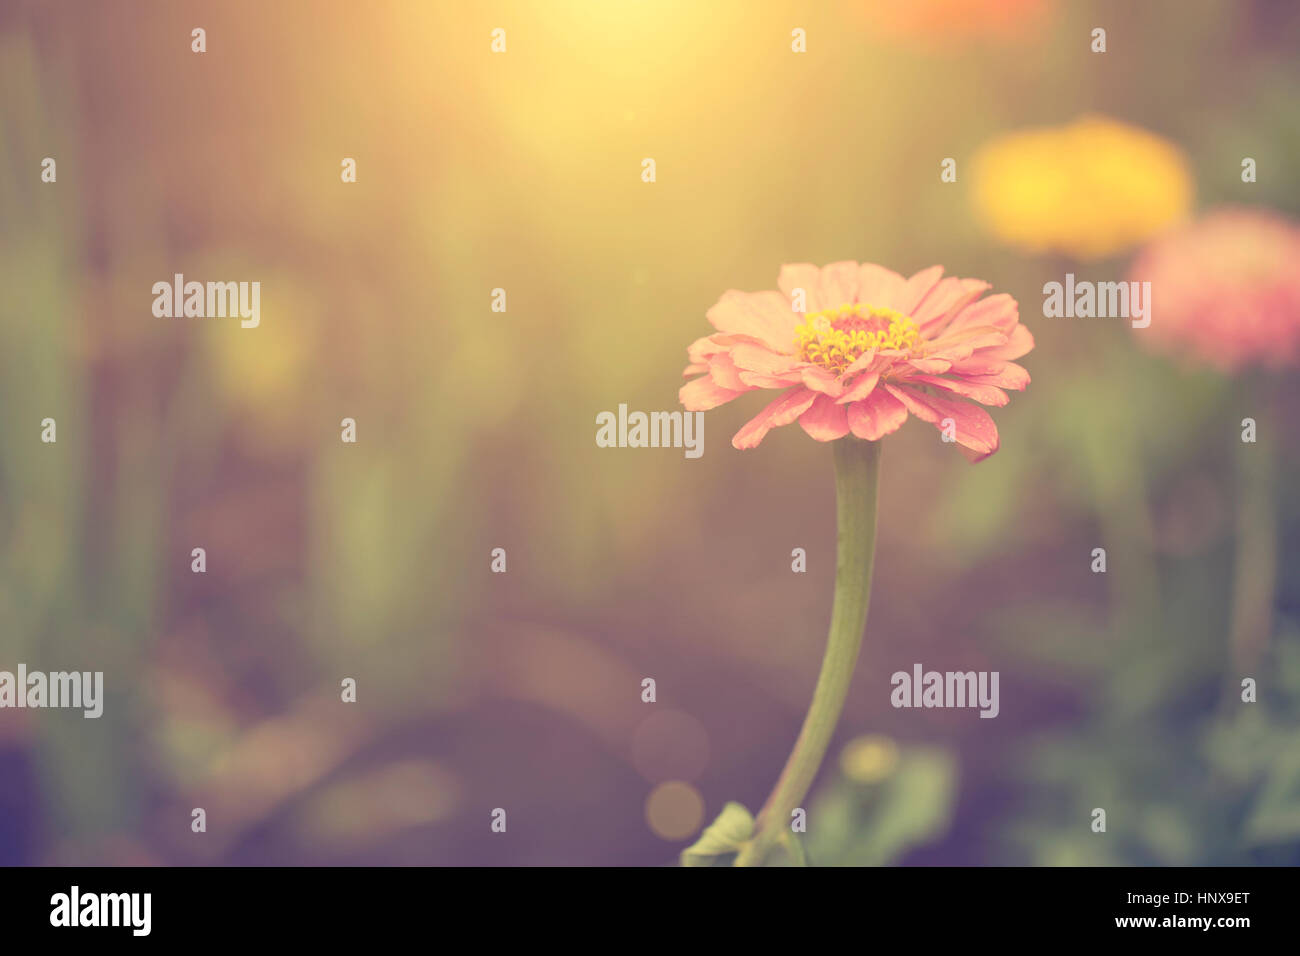 Wildflower in sunset - Stock Image